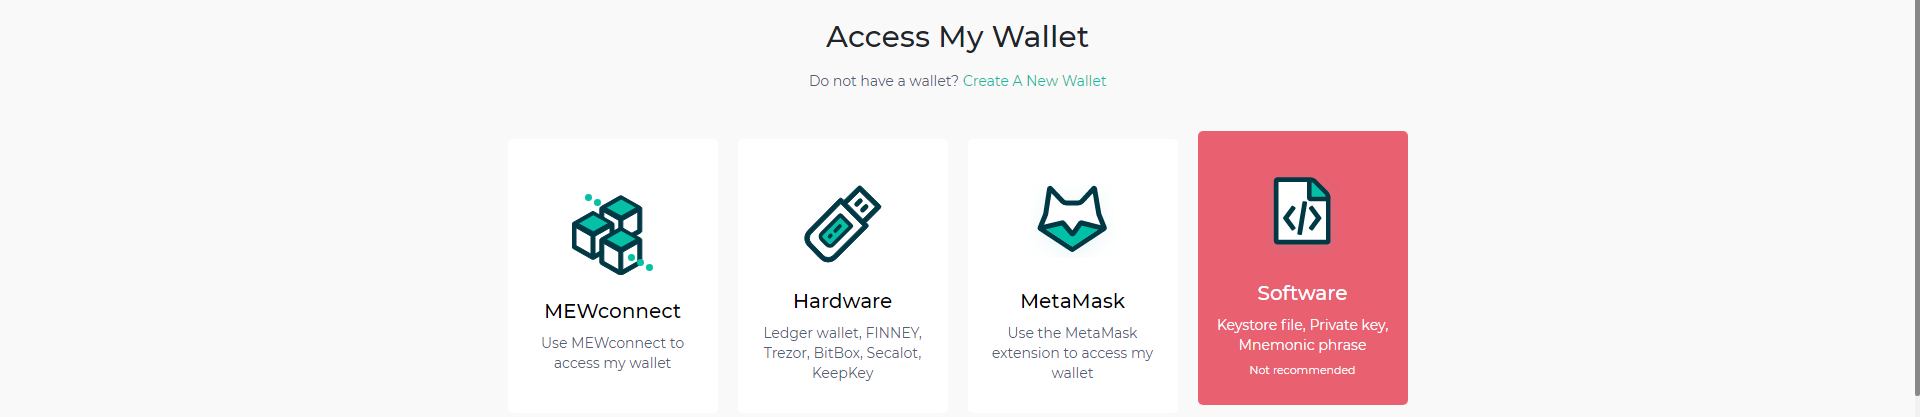 access my ether wallet